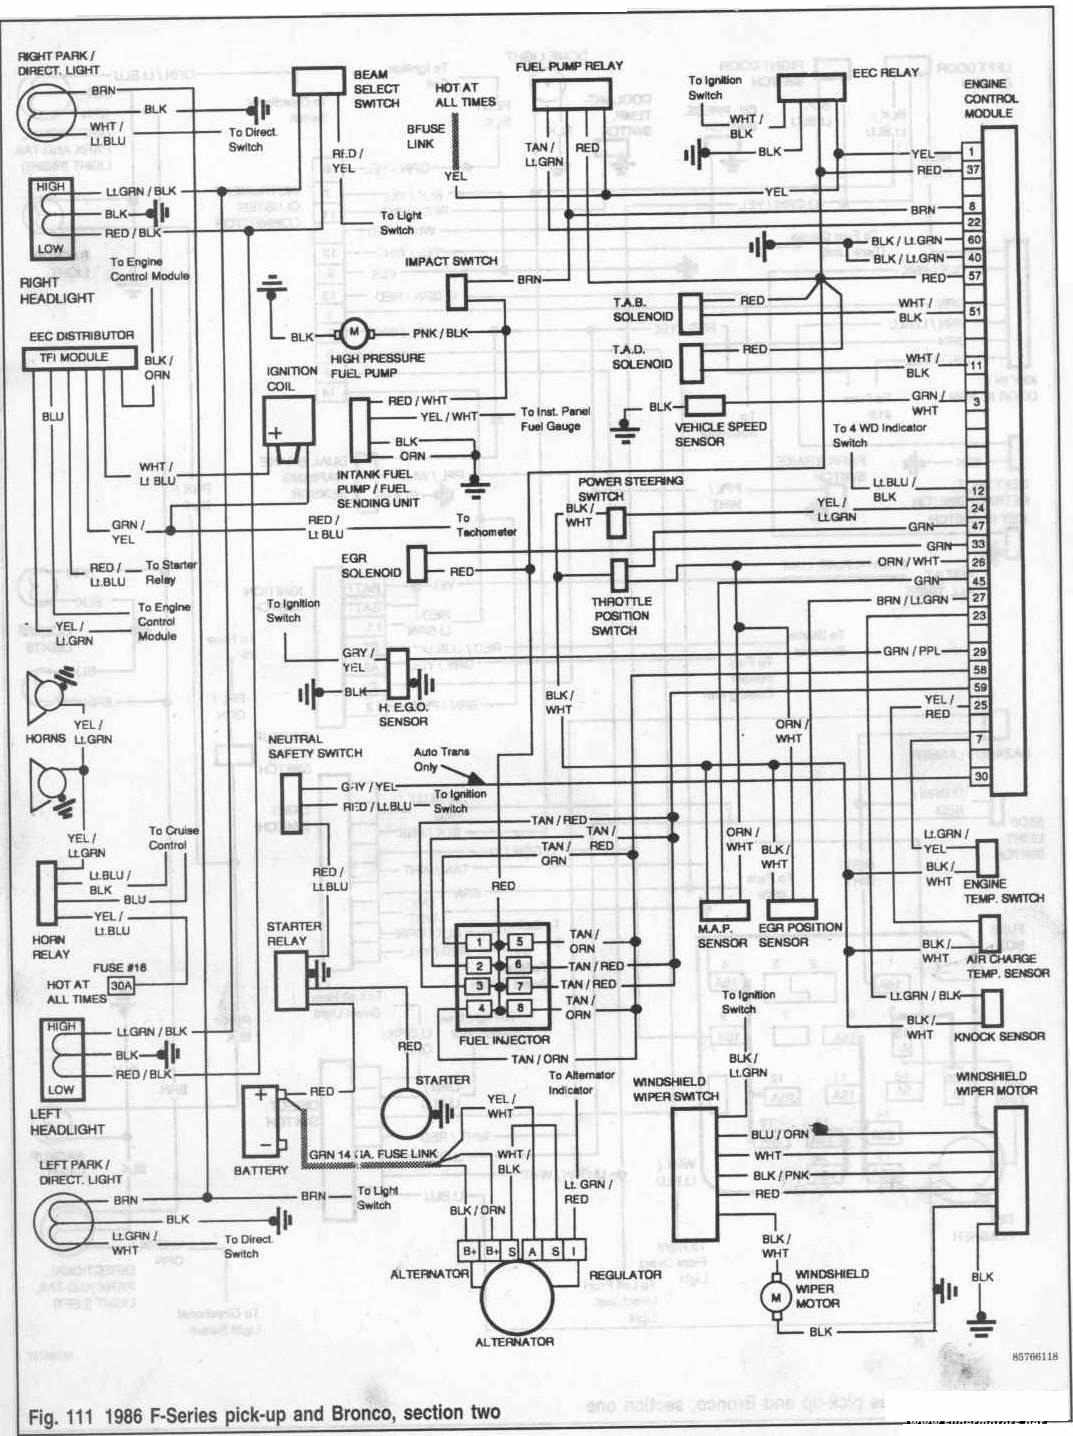 1997 Ford Taurus Radio Wiring Diagram from motogurumag.com